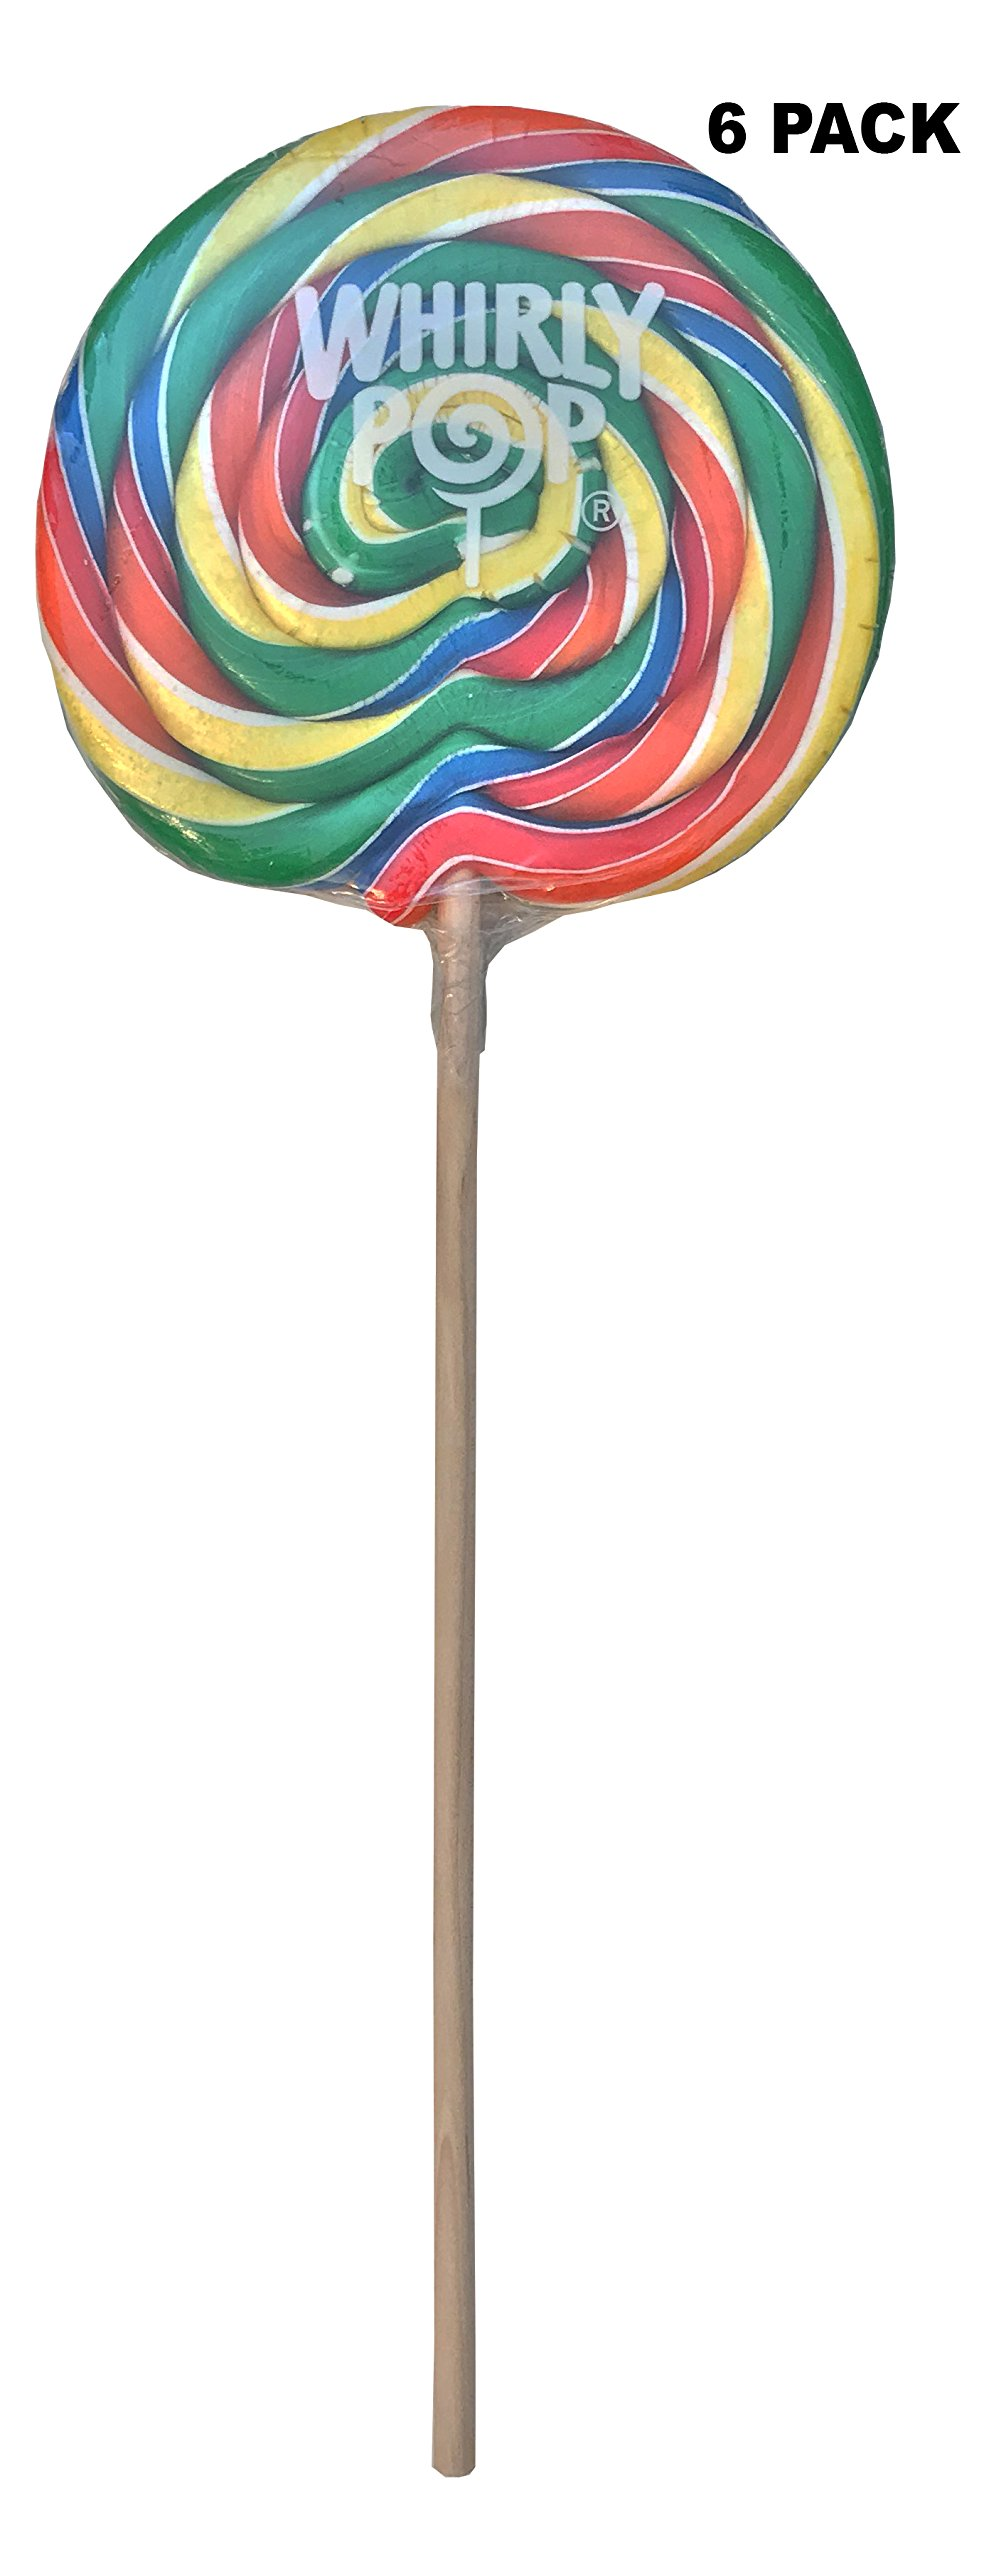 6 Pack Adams Brooks Whirly Pop Lollipop Rainbow Swirl Party Candy 10 Oz by Adams & Brooks